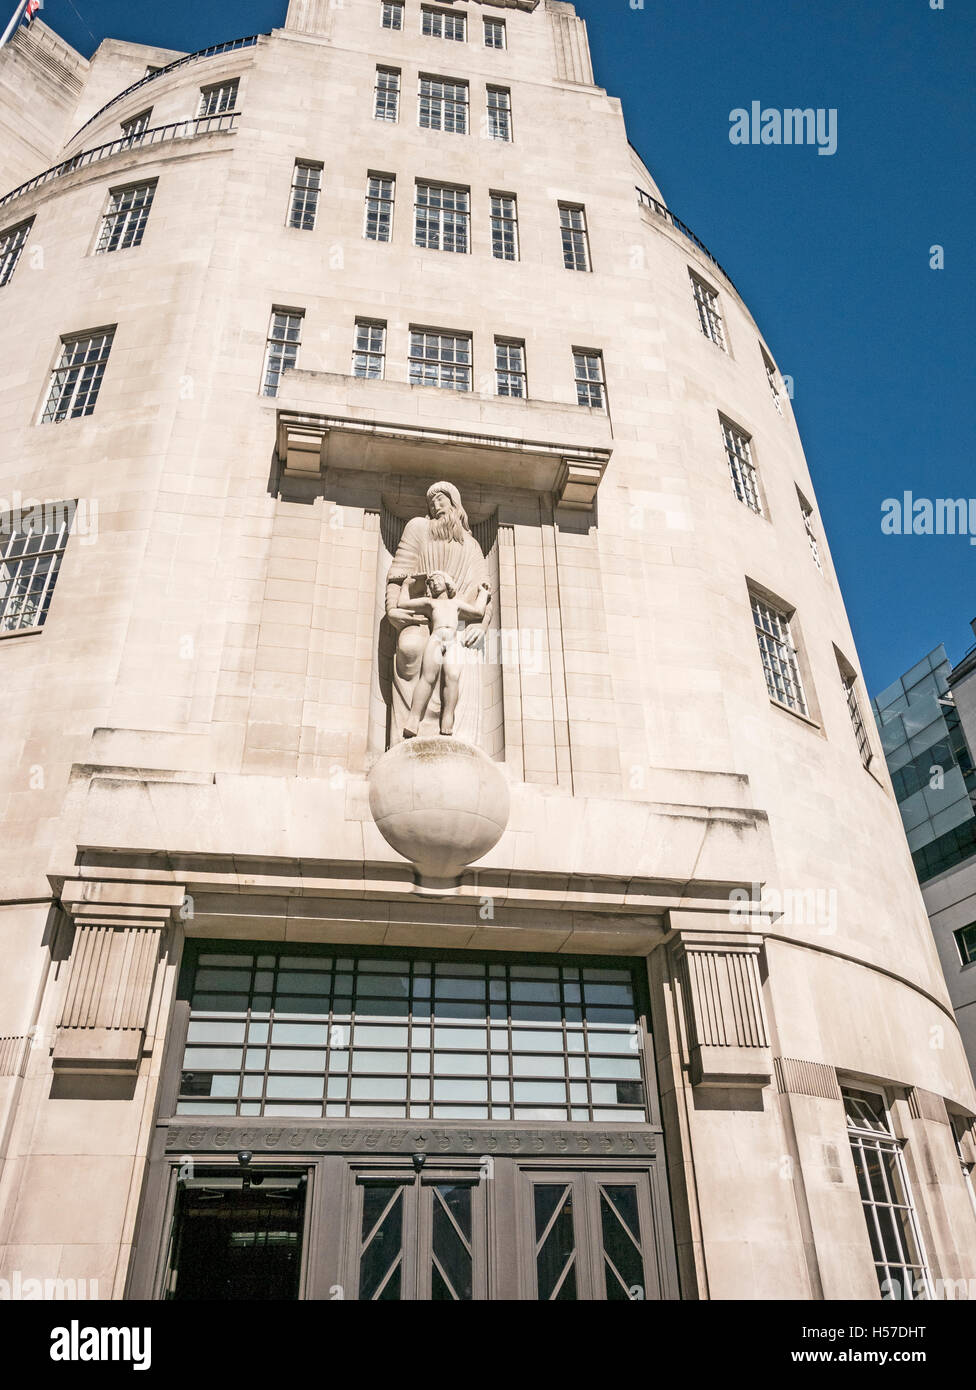 BBC Broadcasting House London UK built in Langham Place 1932 in Art Deco Style with Eric Gill Sculpture of Prospero - Stock Image